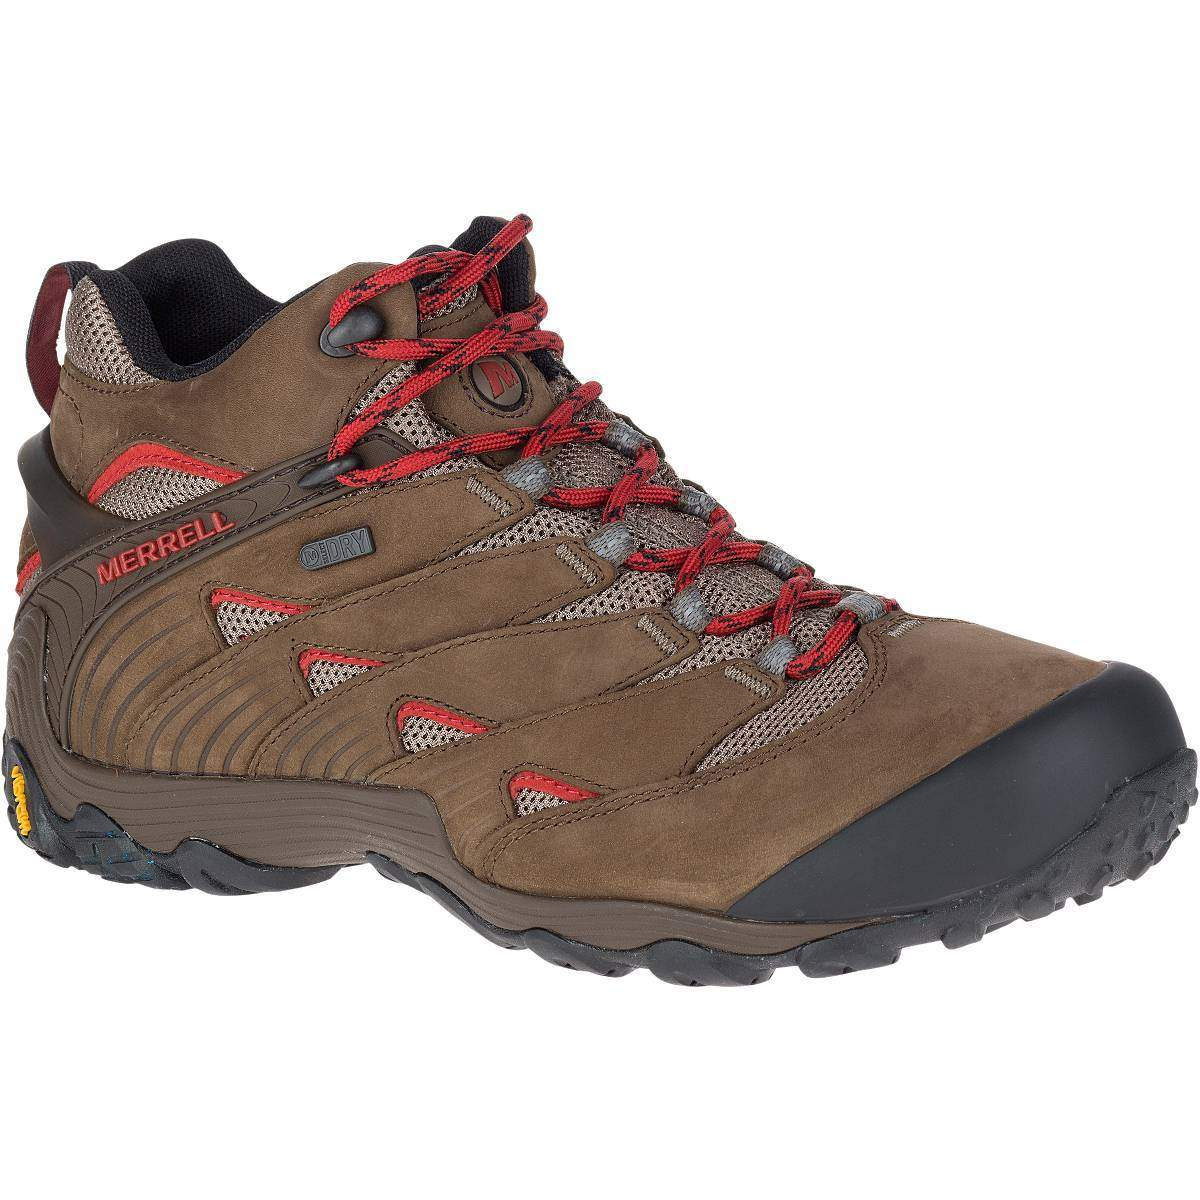 Merrell Extra 25% Off Sale Styles: Men's Chameleon 7 Mid Waterproof Boots